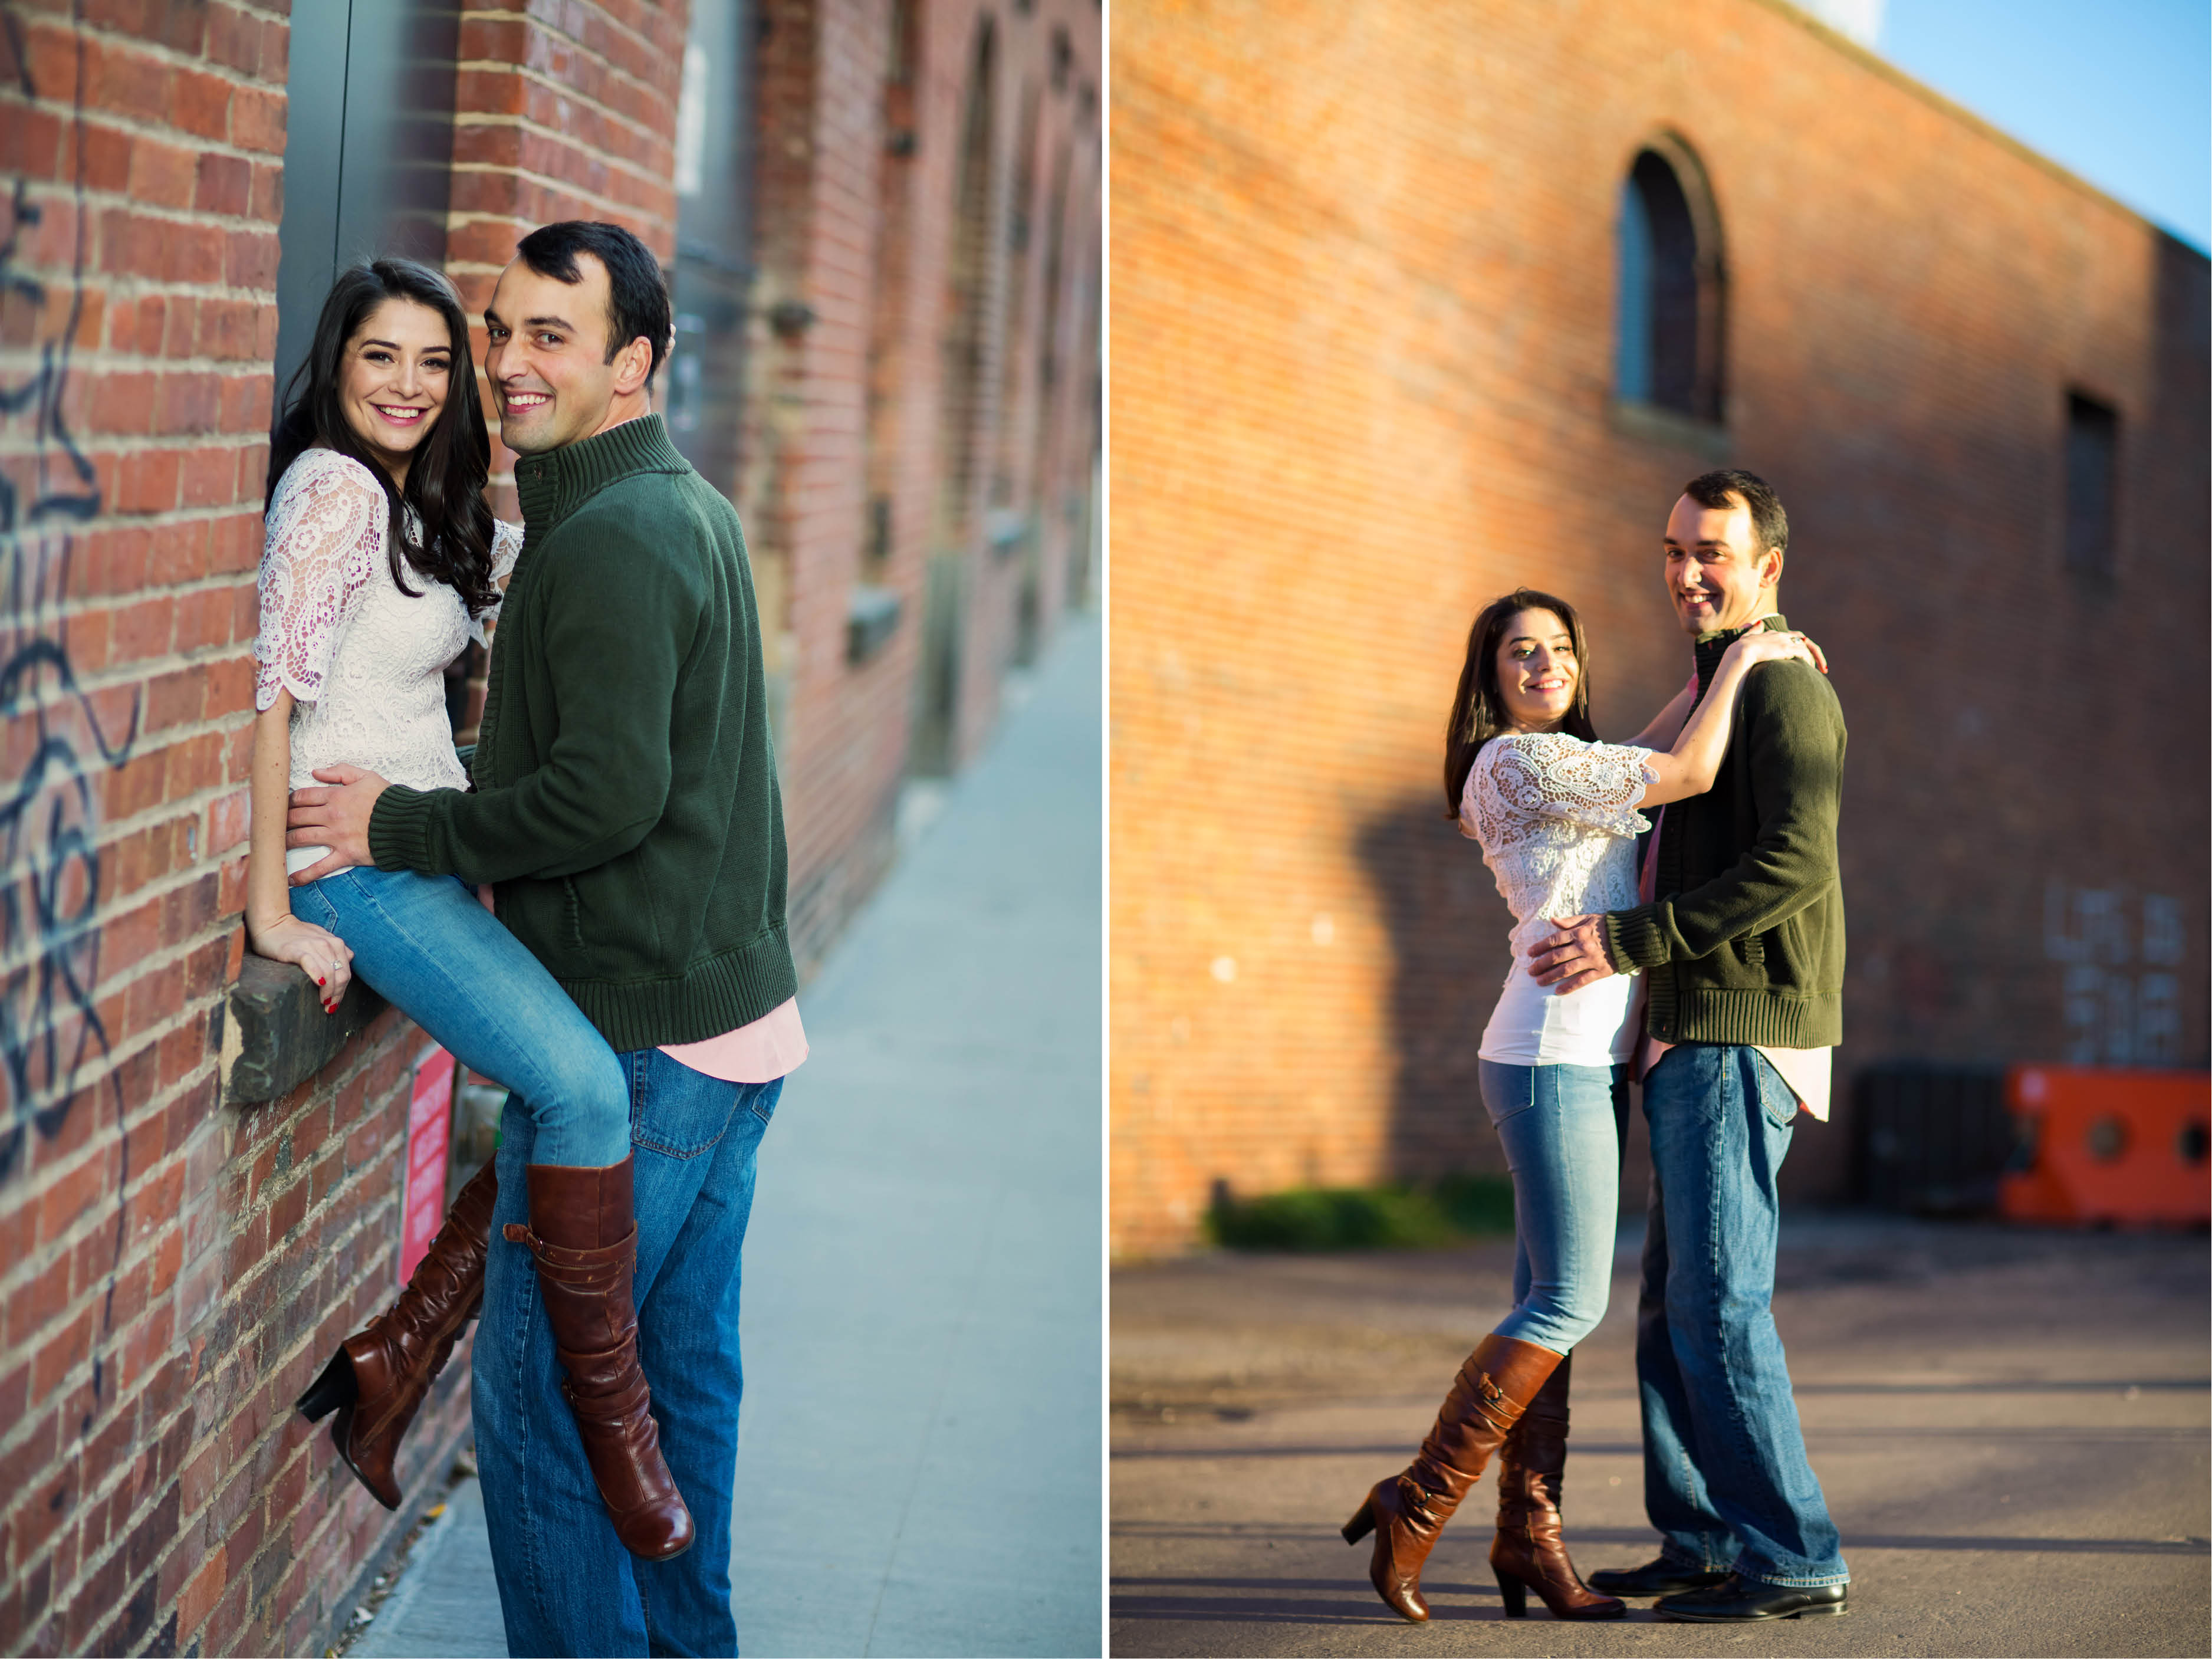 Emma_cleary_photography Dumbo Engagement shoot7